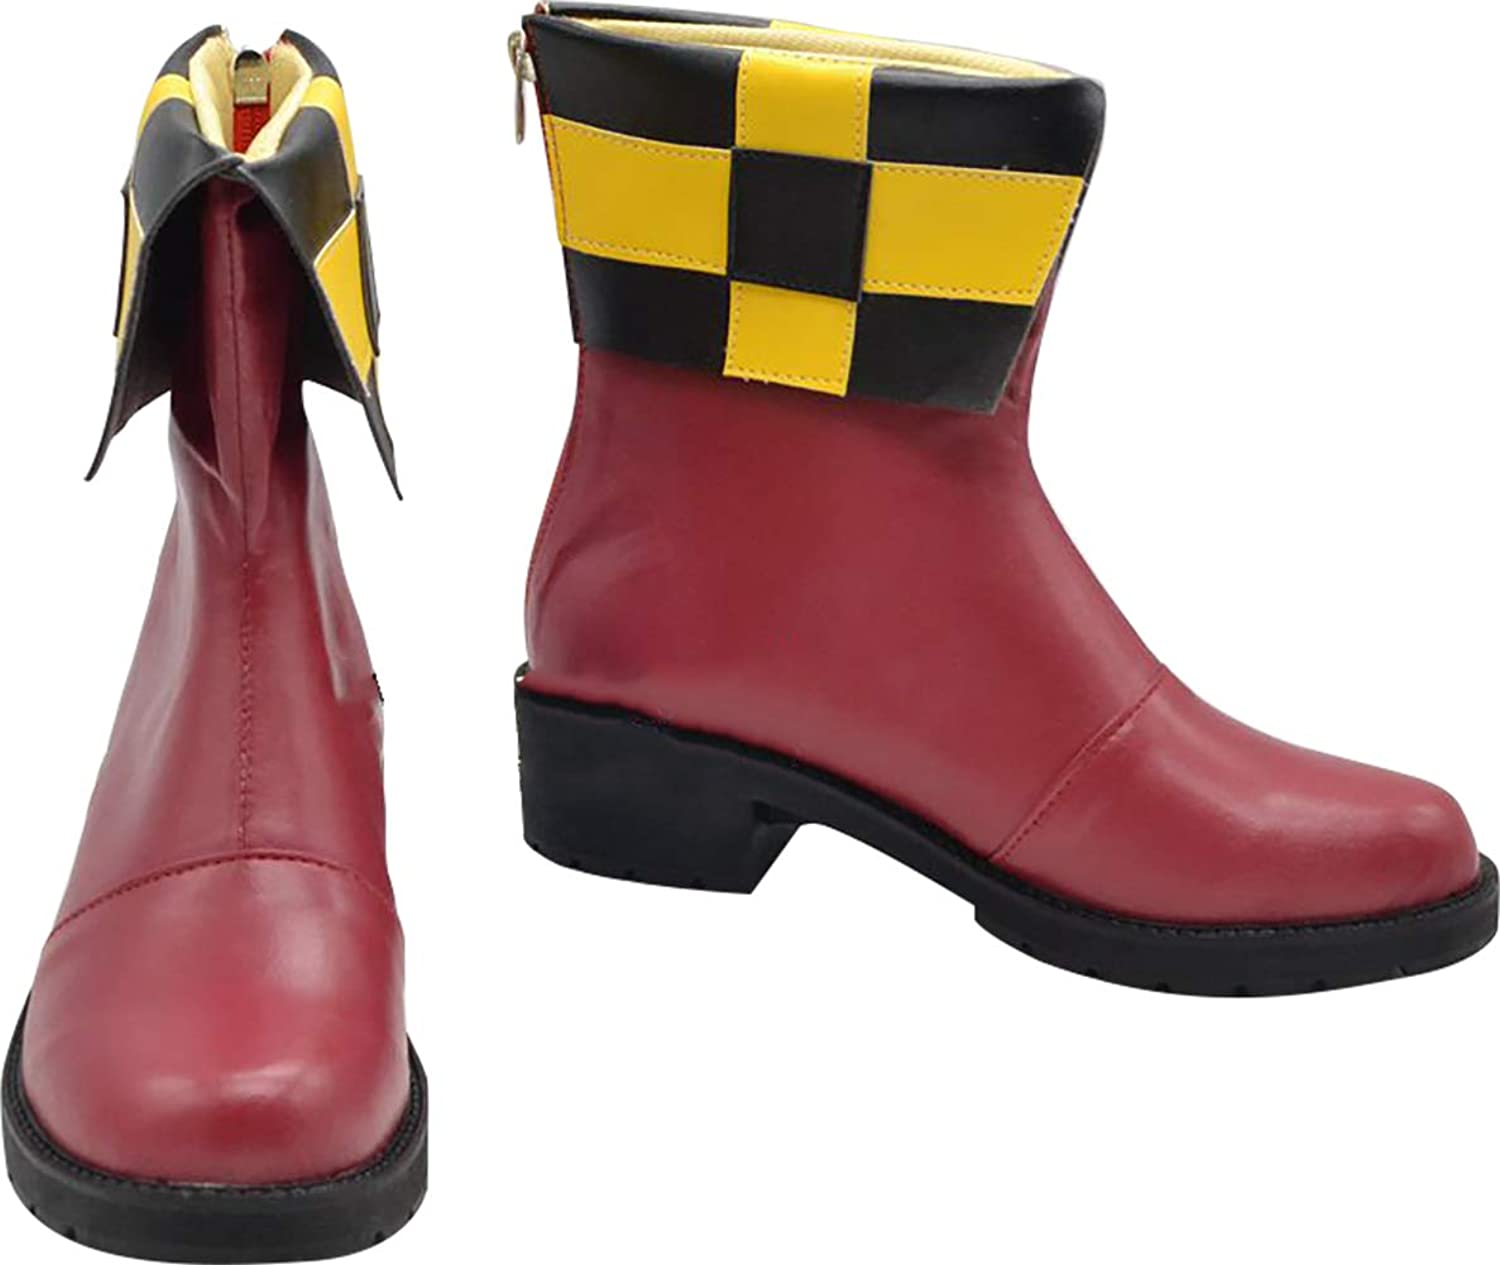 GSFDHDJS Cosplay Boots shoes for Ludere Deorum Loki Laevatein red